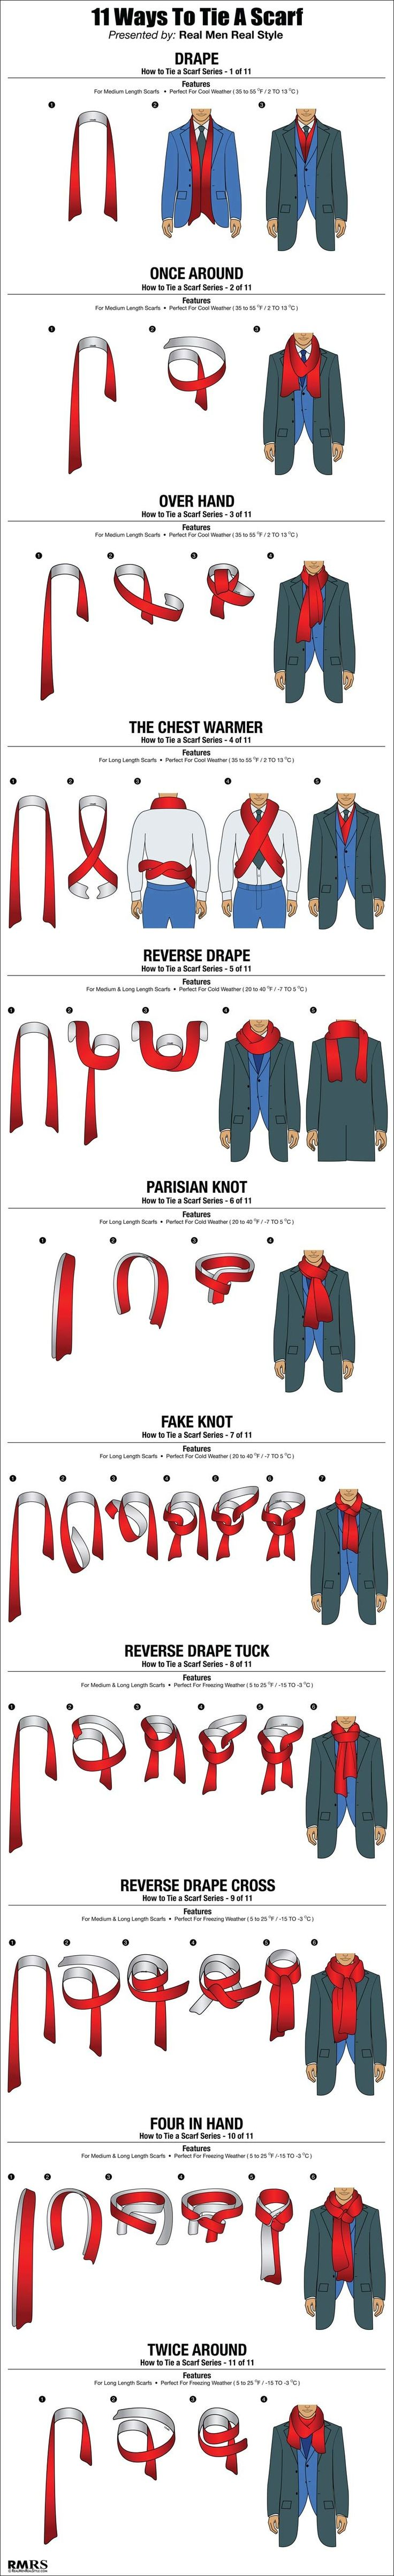 How to tie a scarf men fashion 6